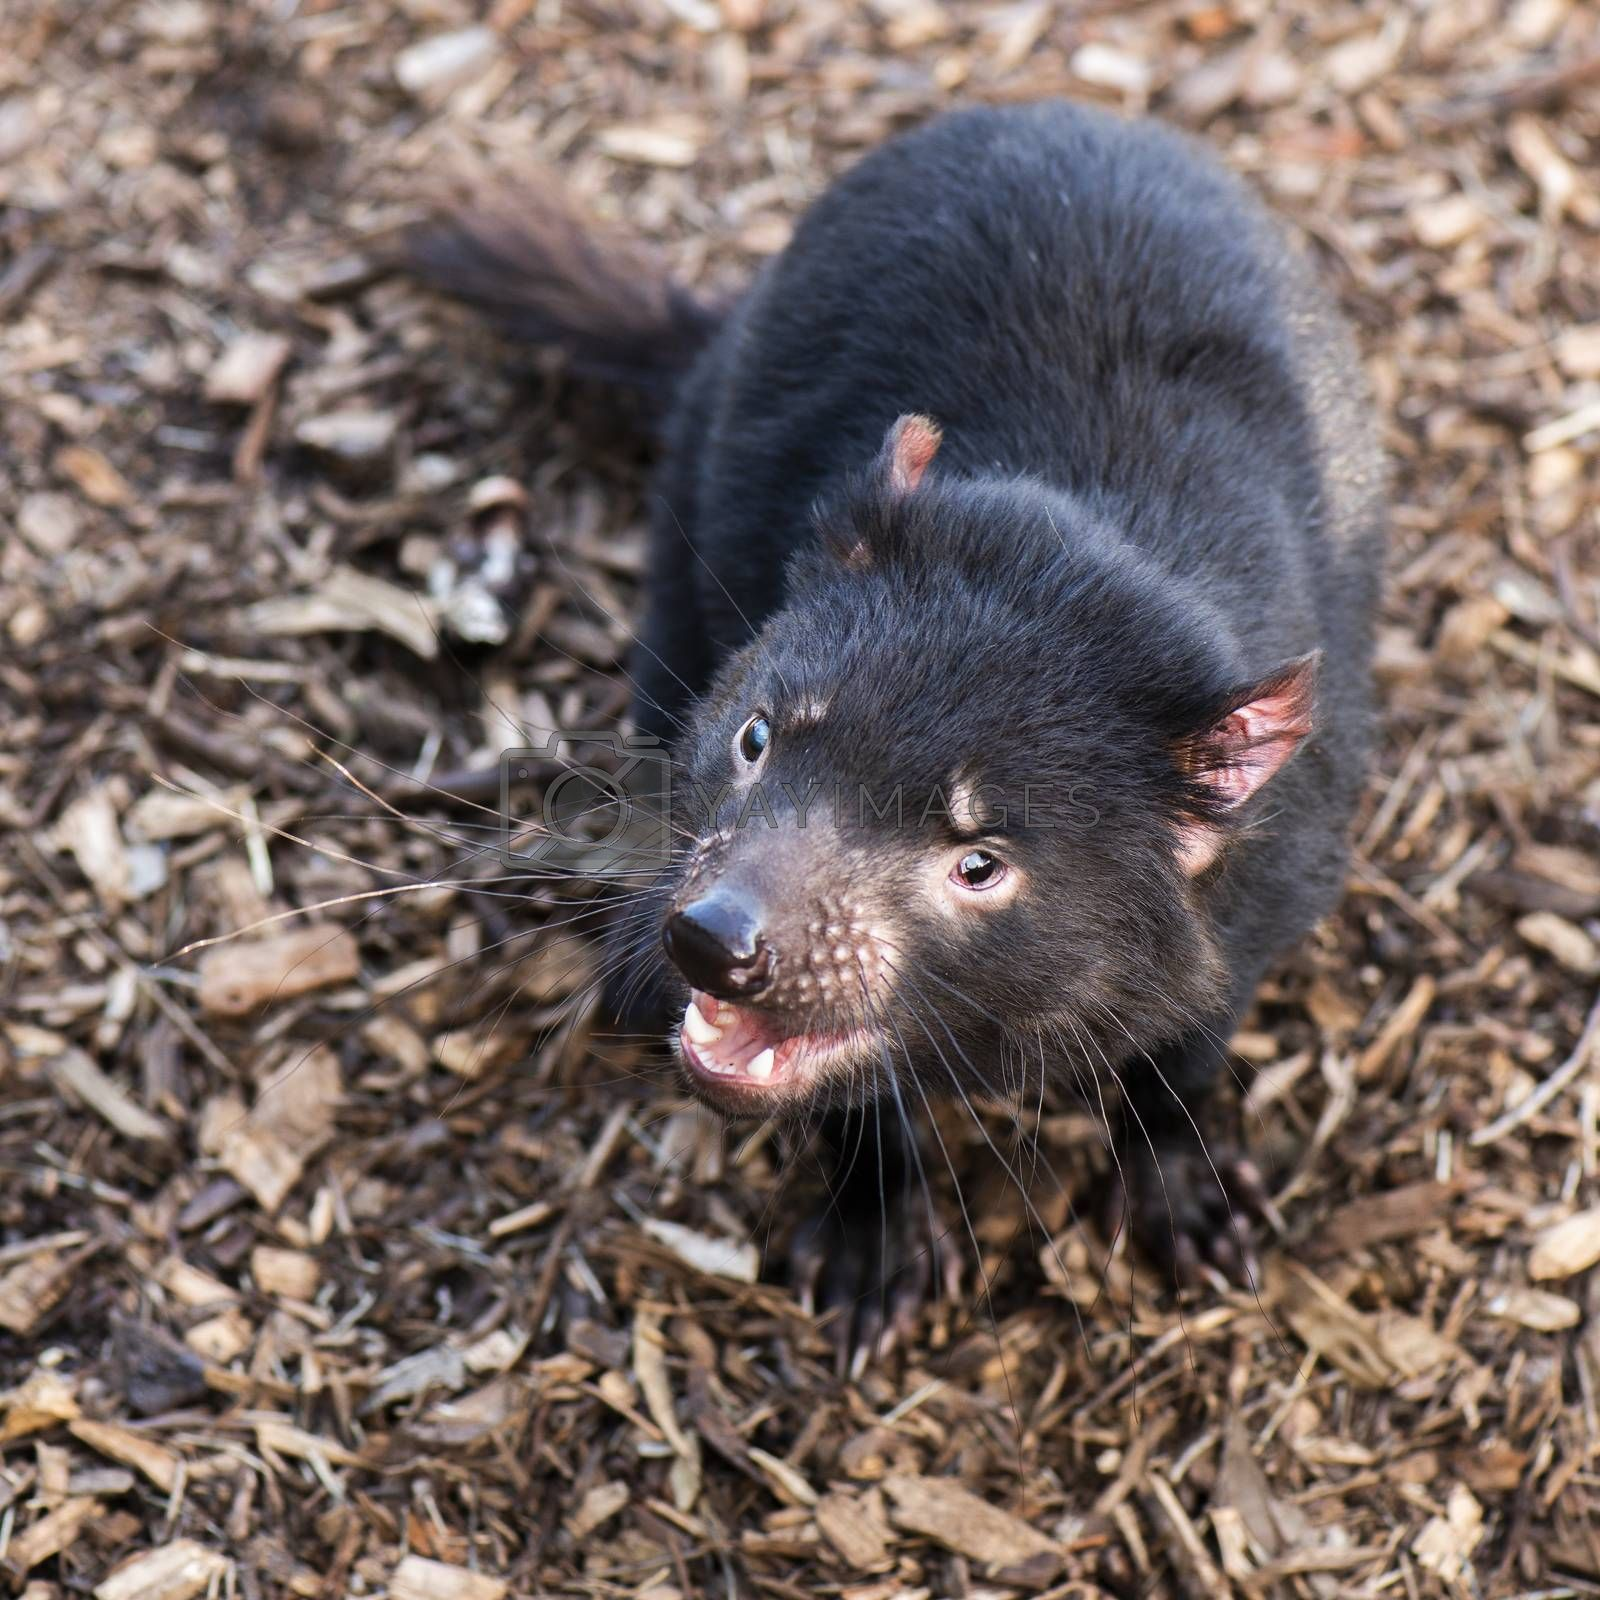 Royalty free image of Tasmanian Devil outside during the day in Tasmania. by artistrobd